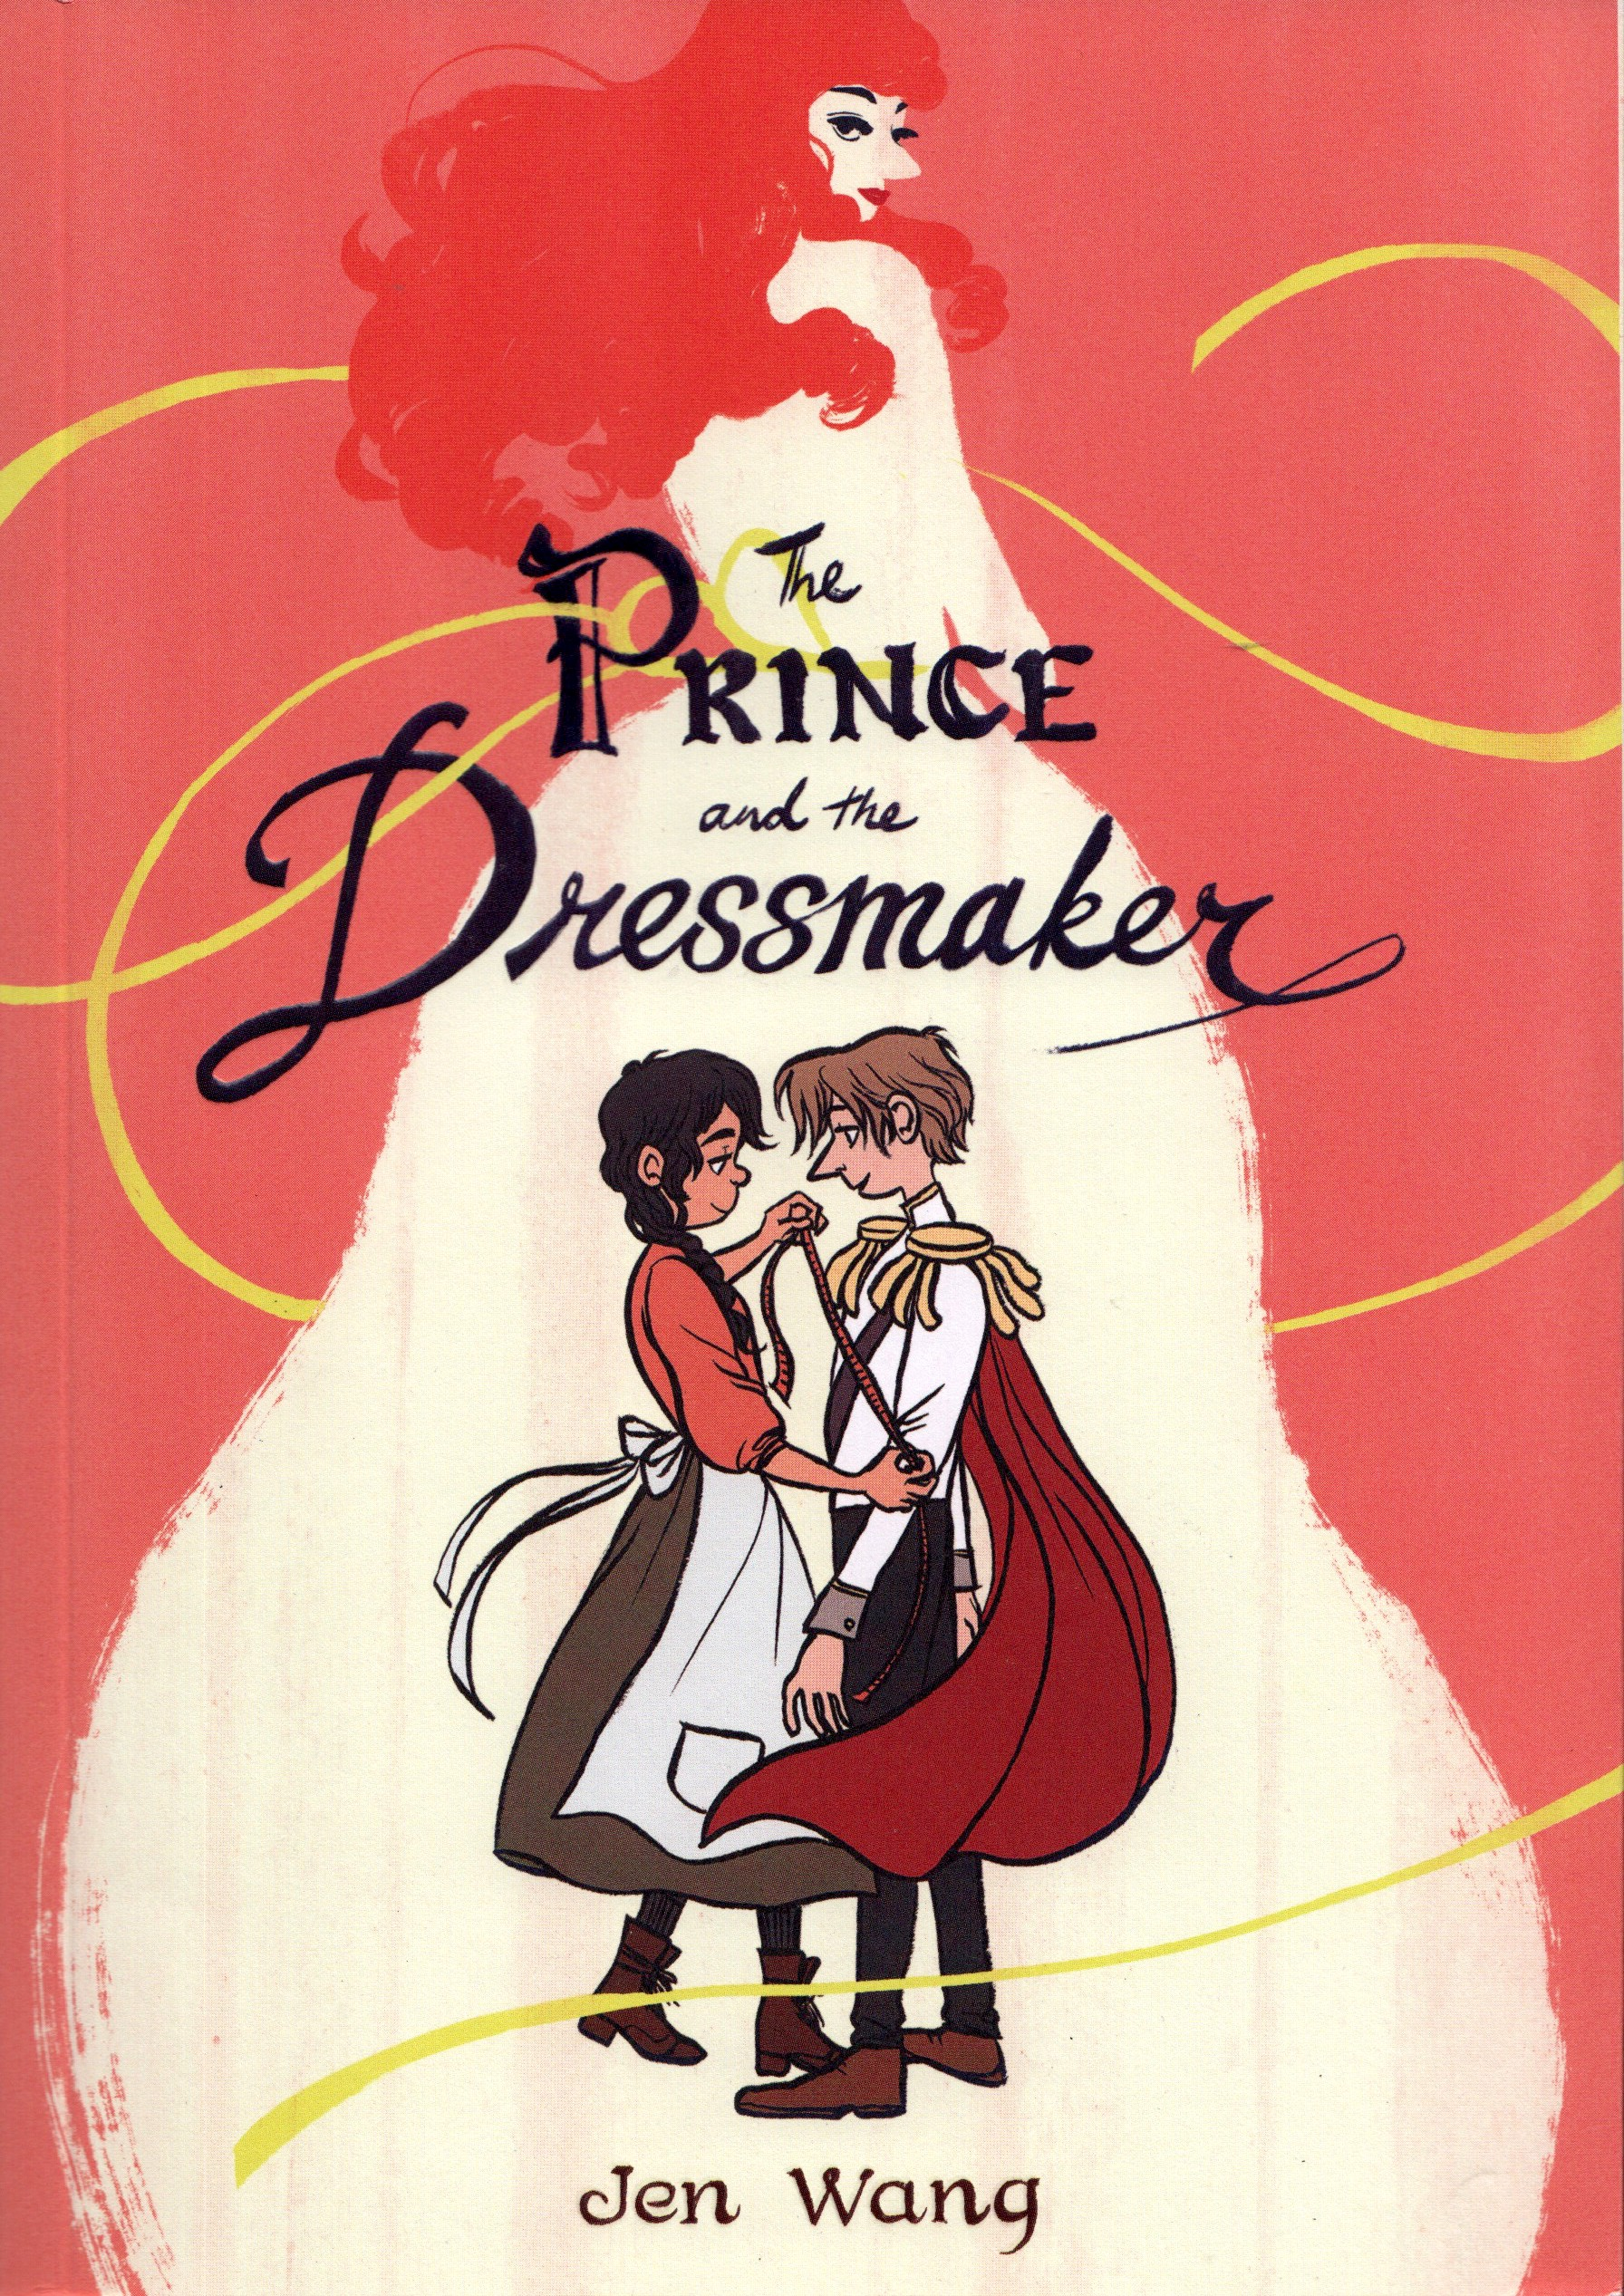 The Prince and the Dressmaker - cover